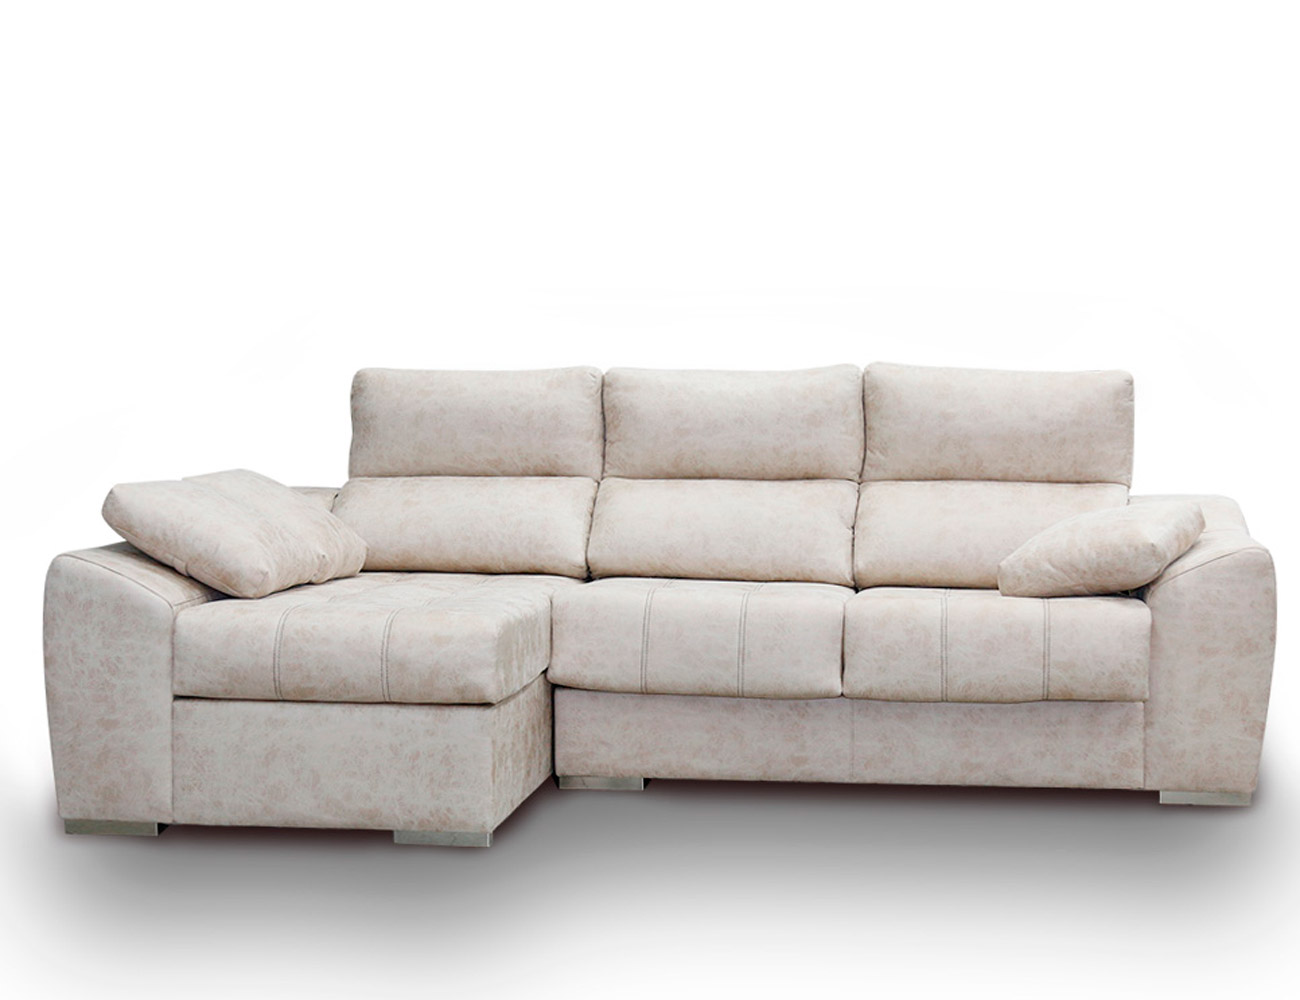 Sofa chaiselongue anti manchas beig blanco10